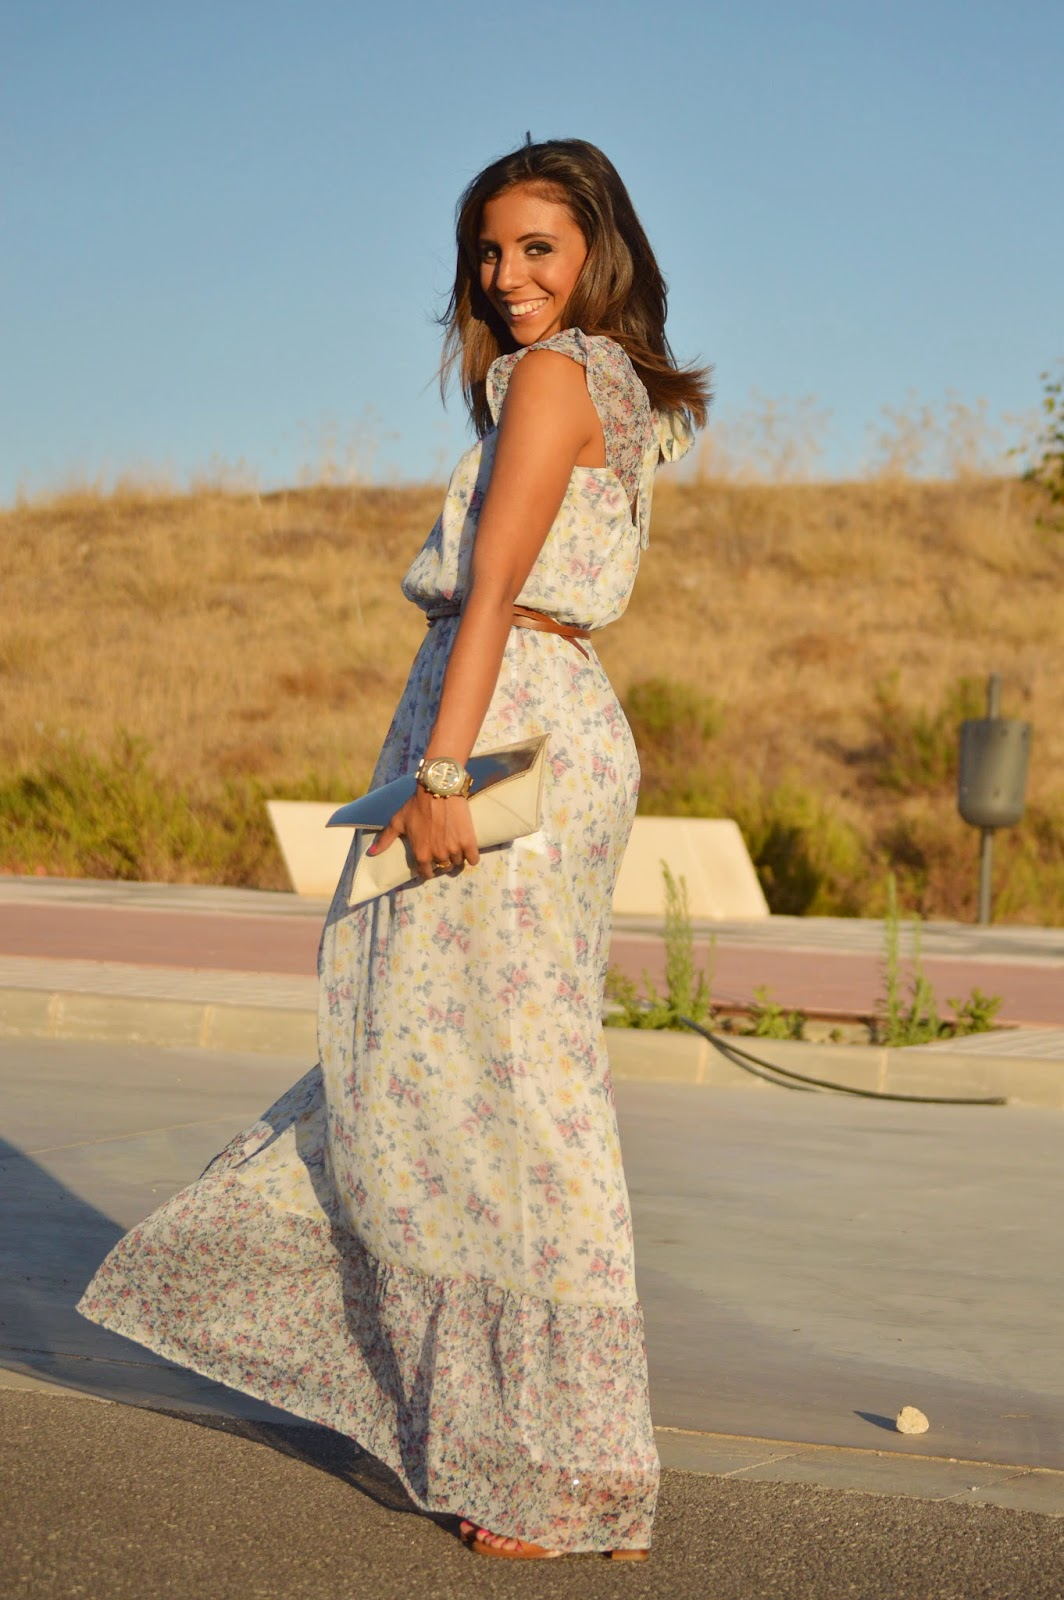 dress zara street style fashion style blogger malaga malagueña outfit look ootd flowers styles stylish moda mood cristina style lovely nice cute swag purse designer beauty summer pics chic casual wear